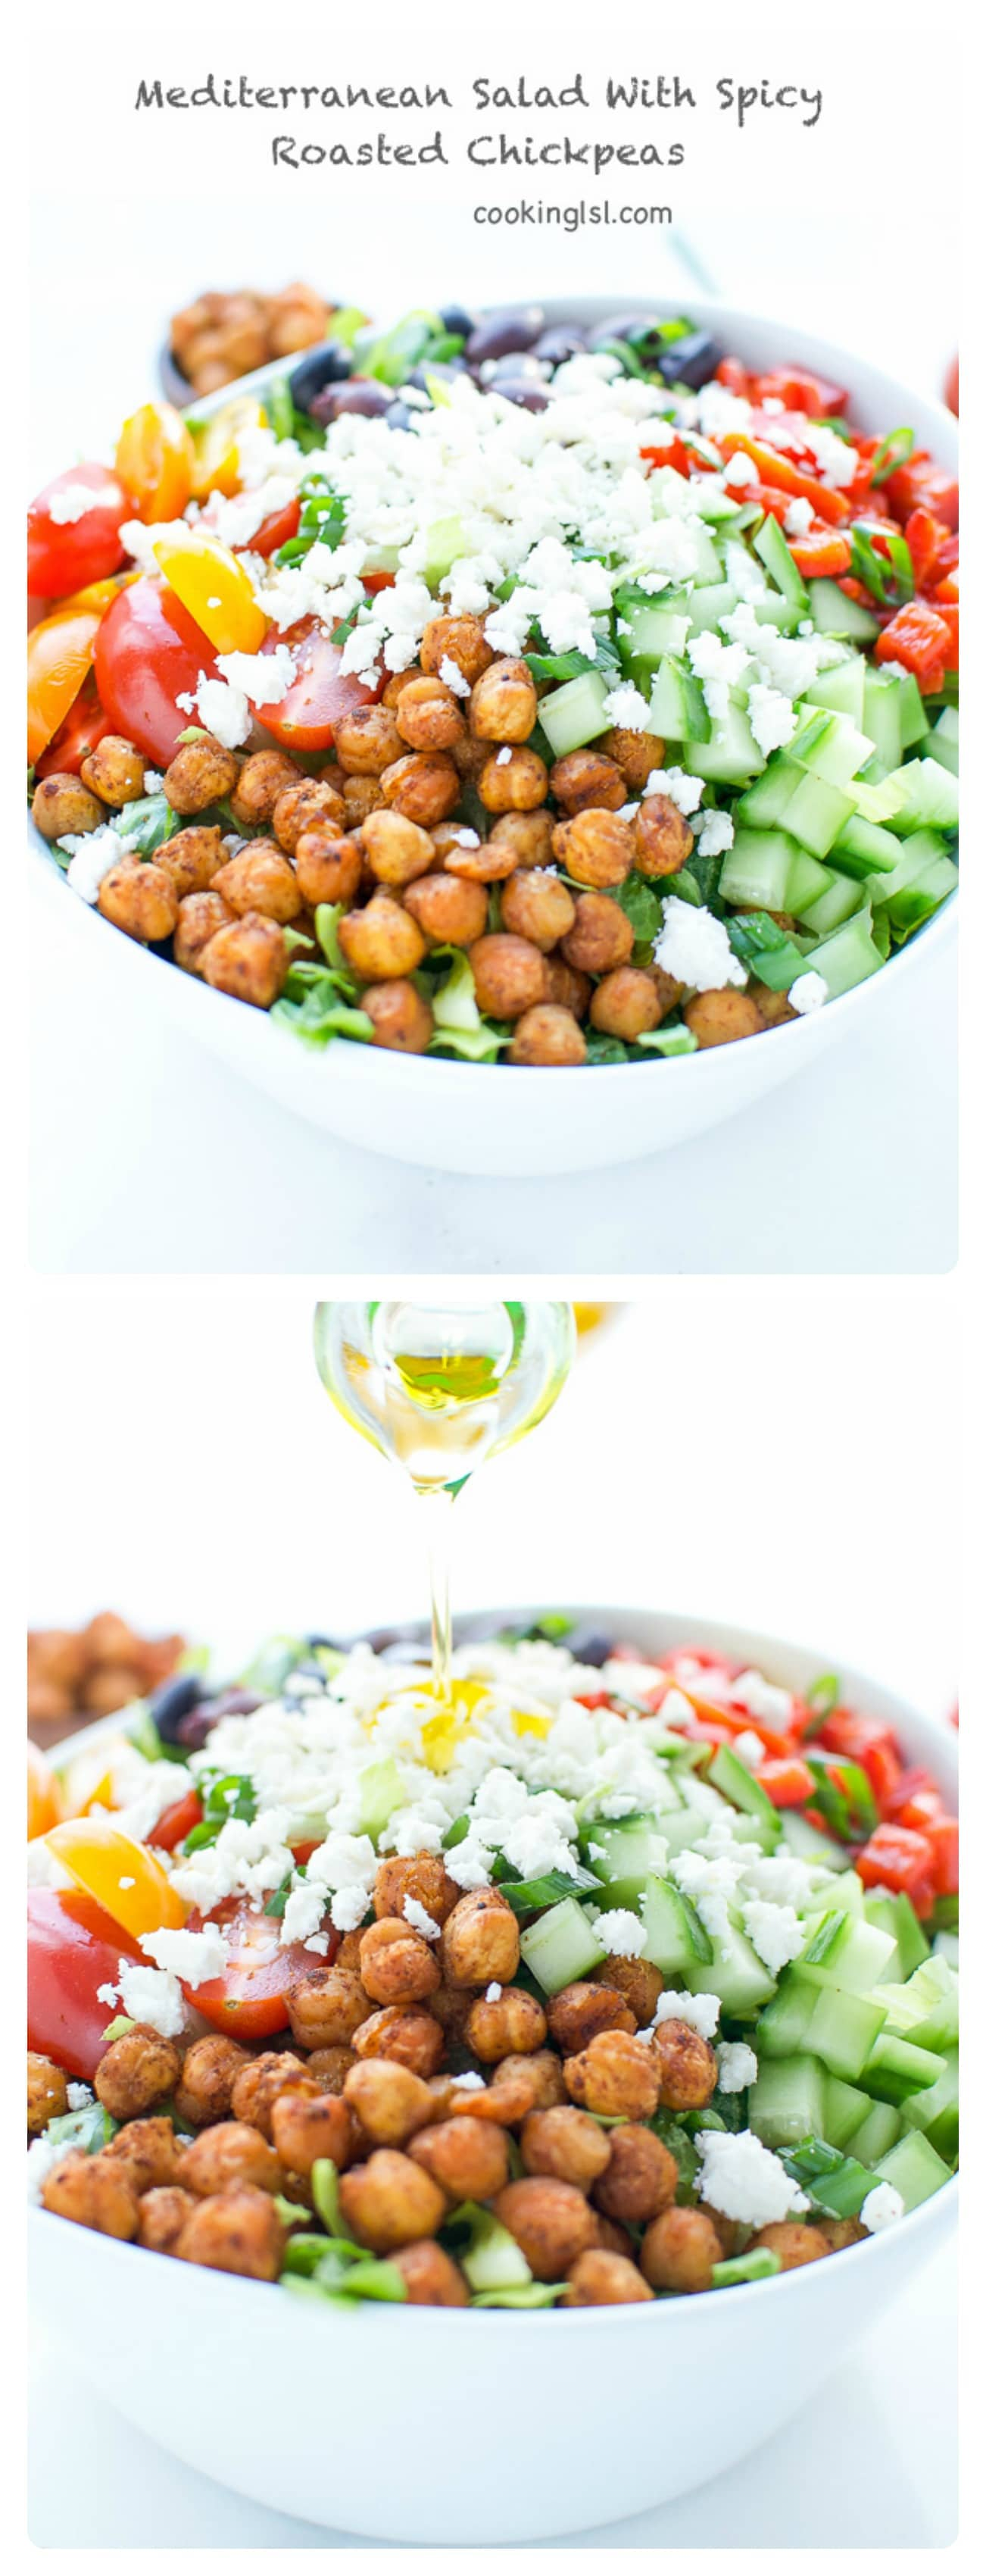 Mediterranean-salad-spicy-roasted-chickpeas